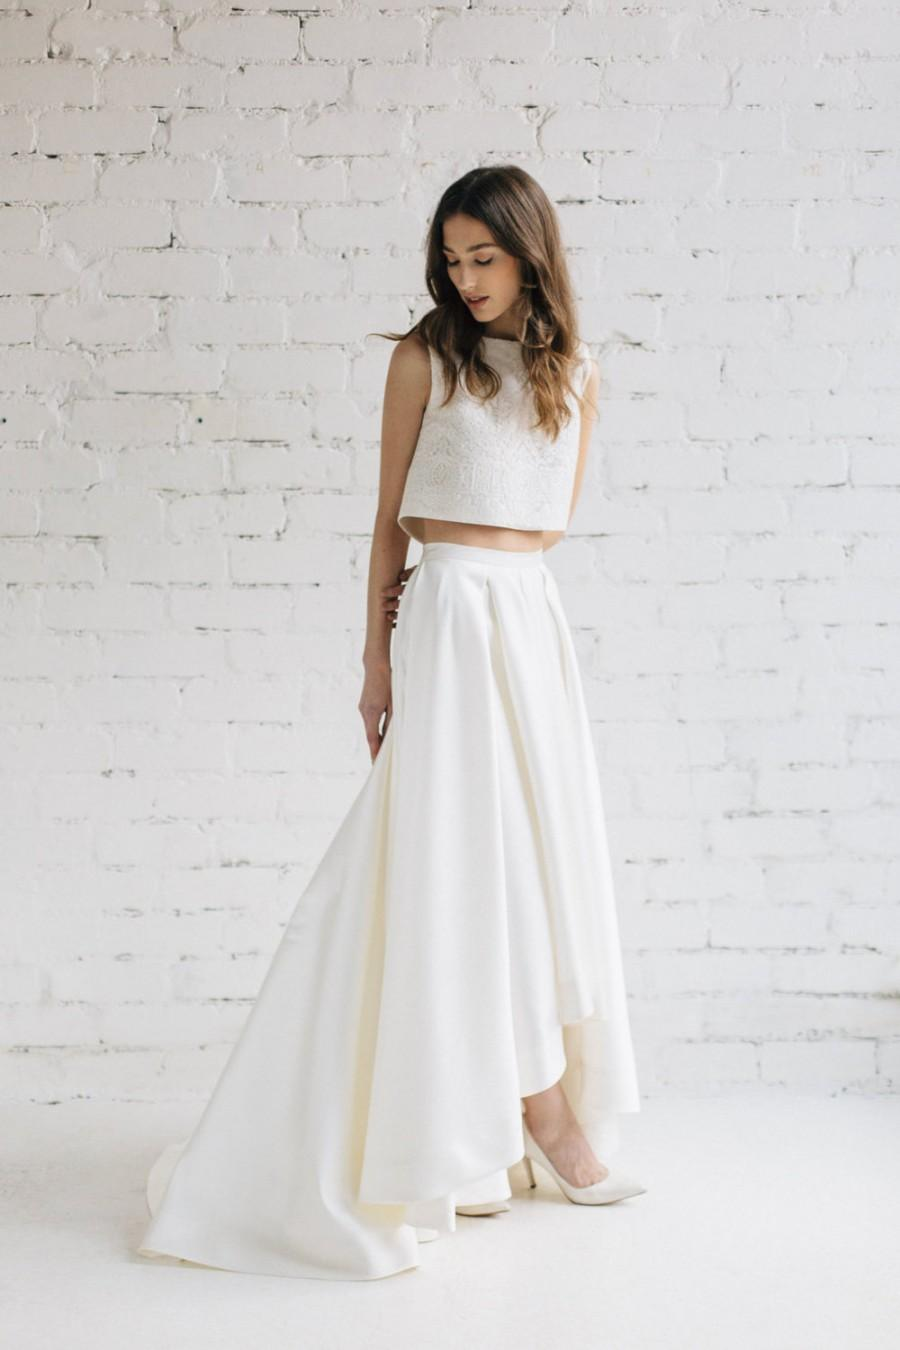 charlotte crop top skirt crop top wedding dress Black and white photo of two piece Monique Lhuillier wedding dress